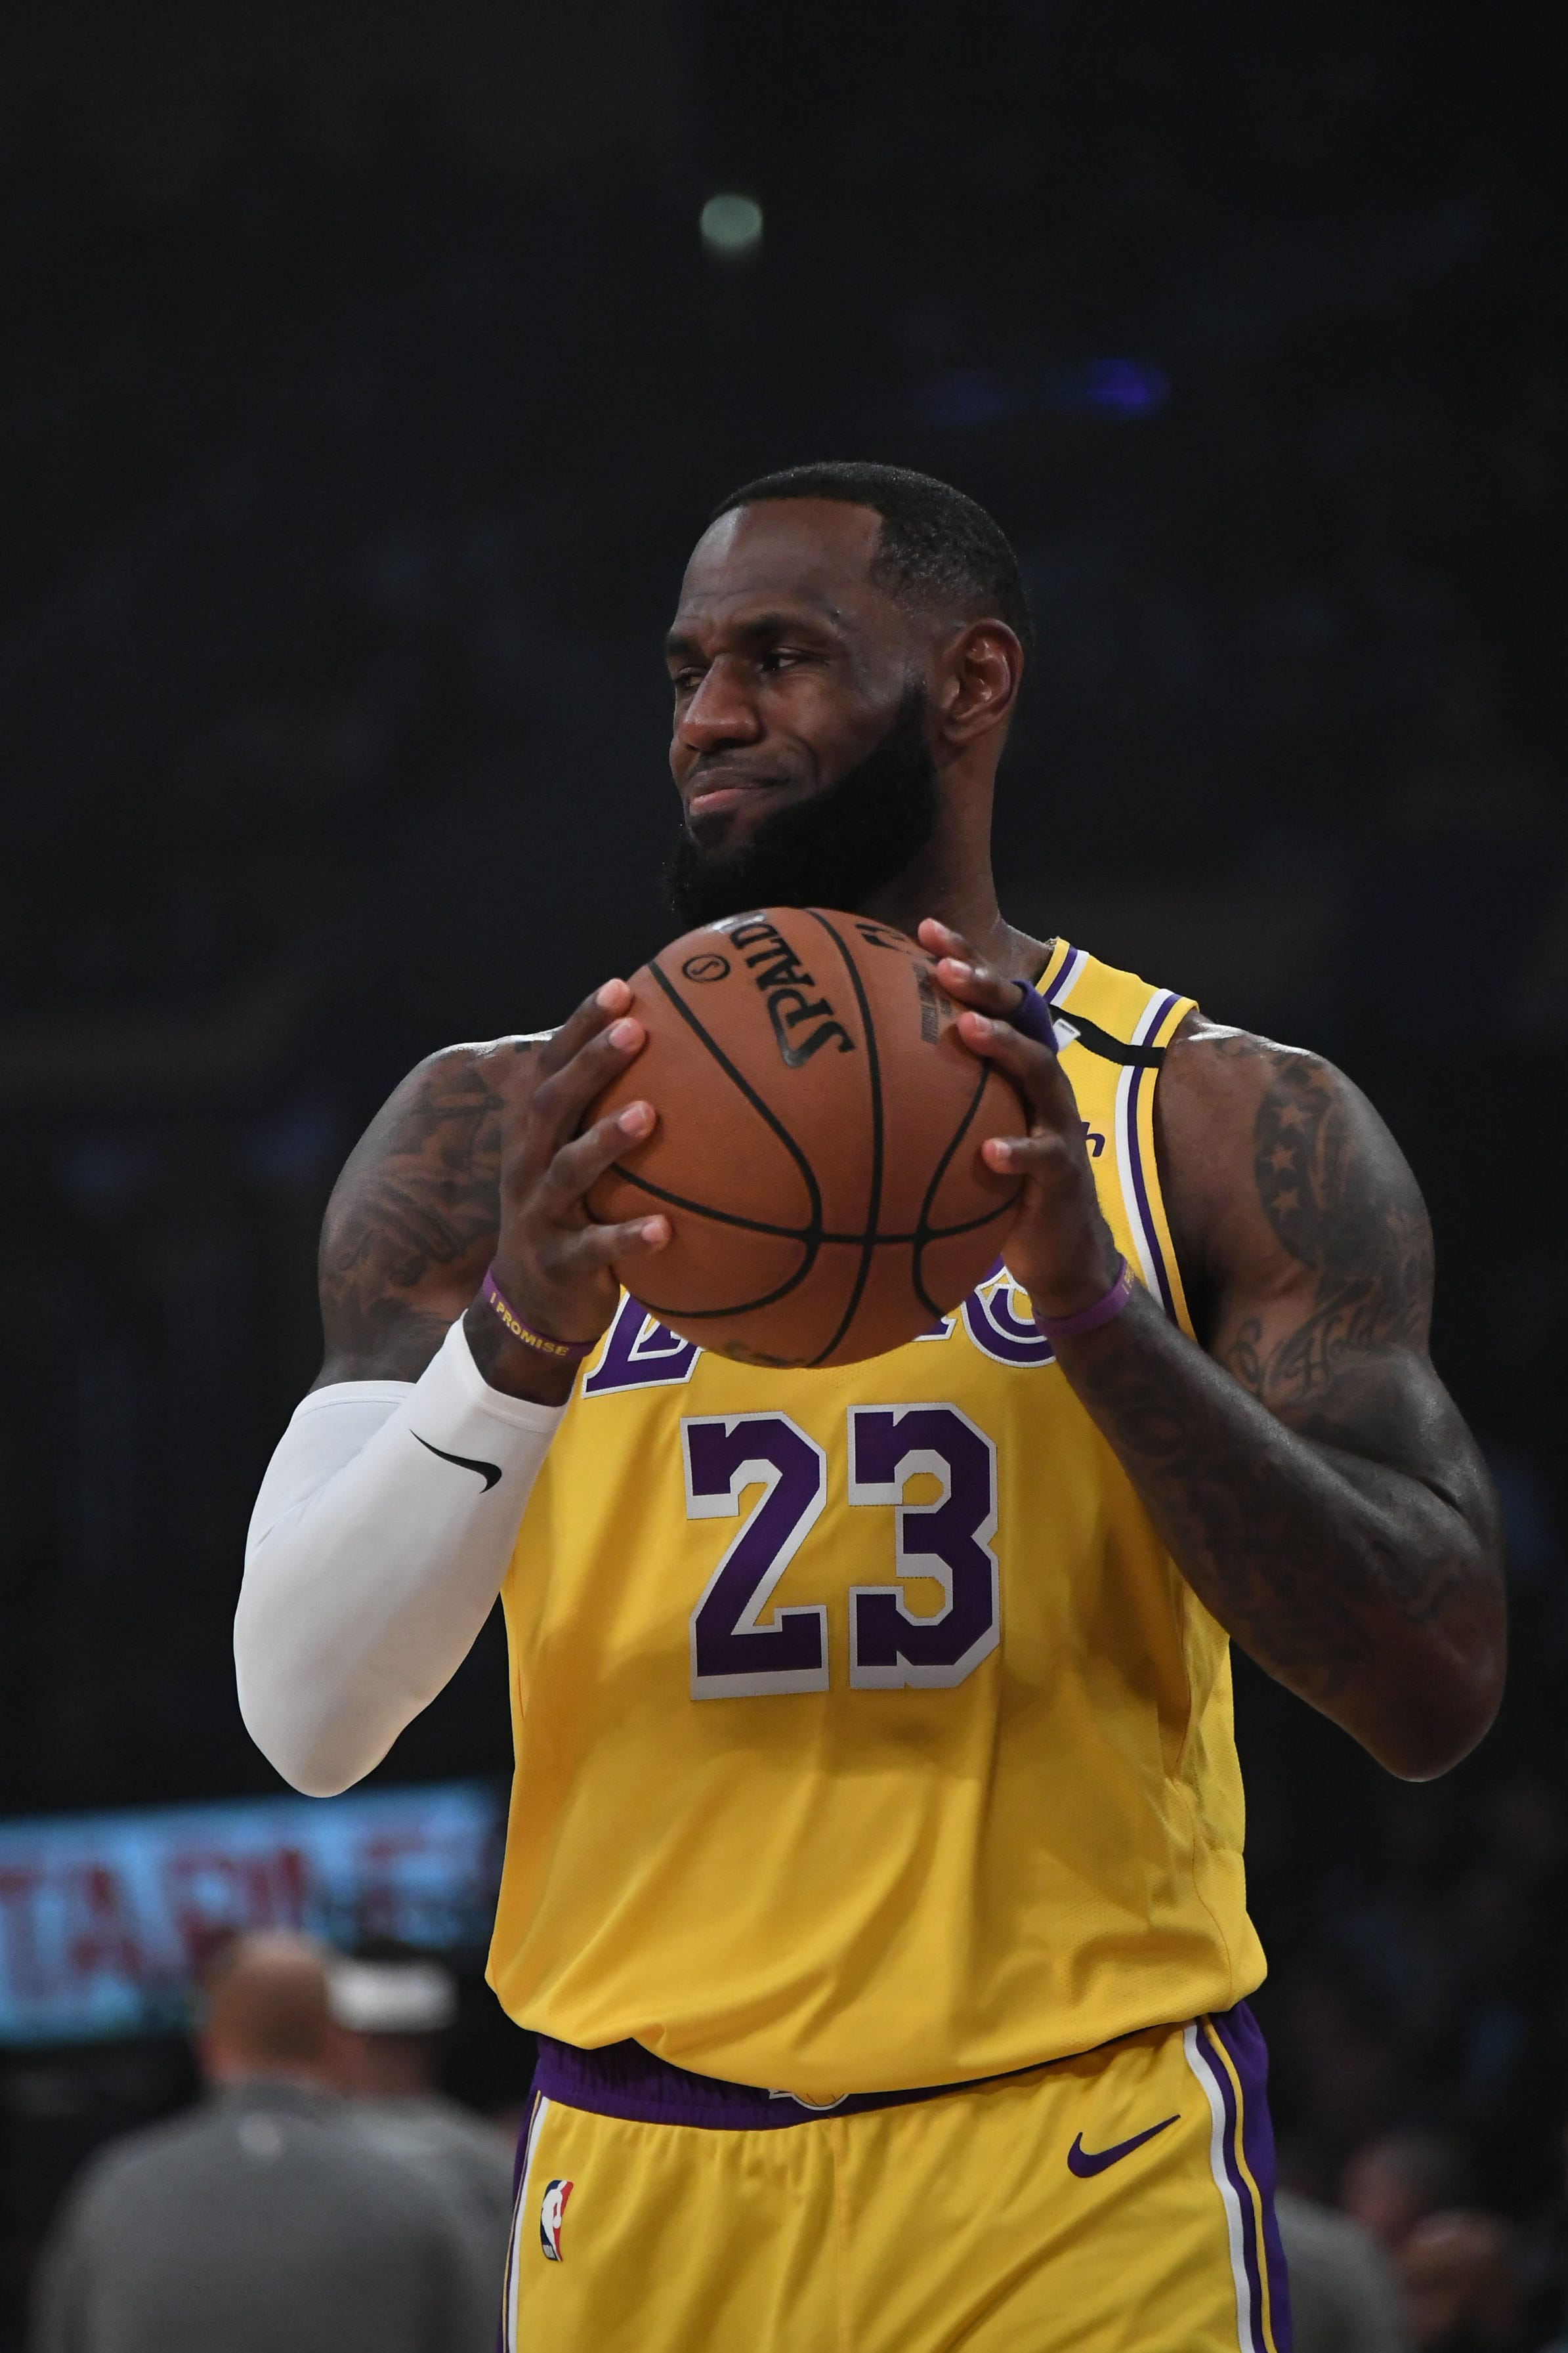 LeBron James and other athletes team up to form More Than A Vote